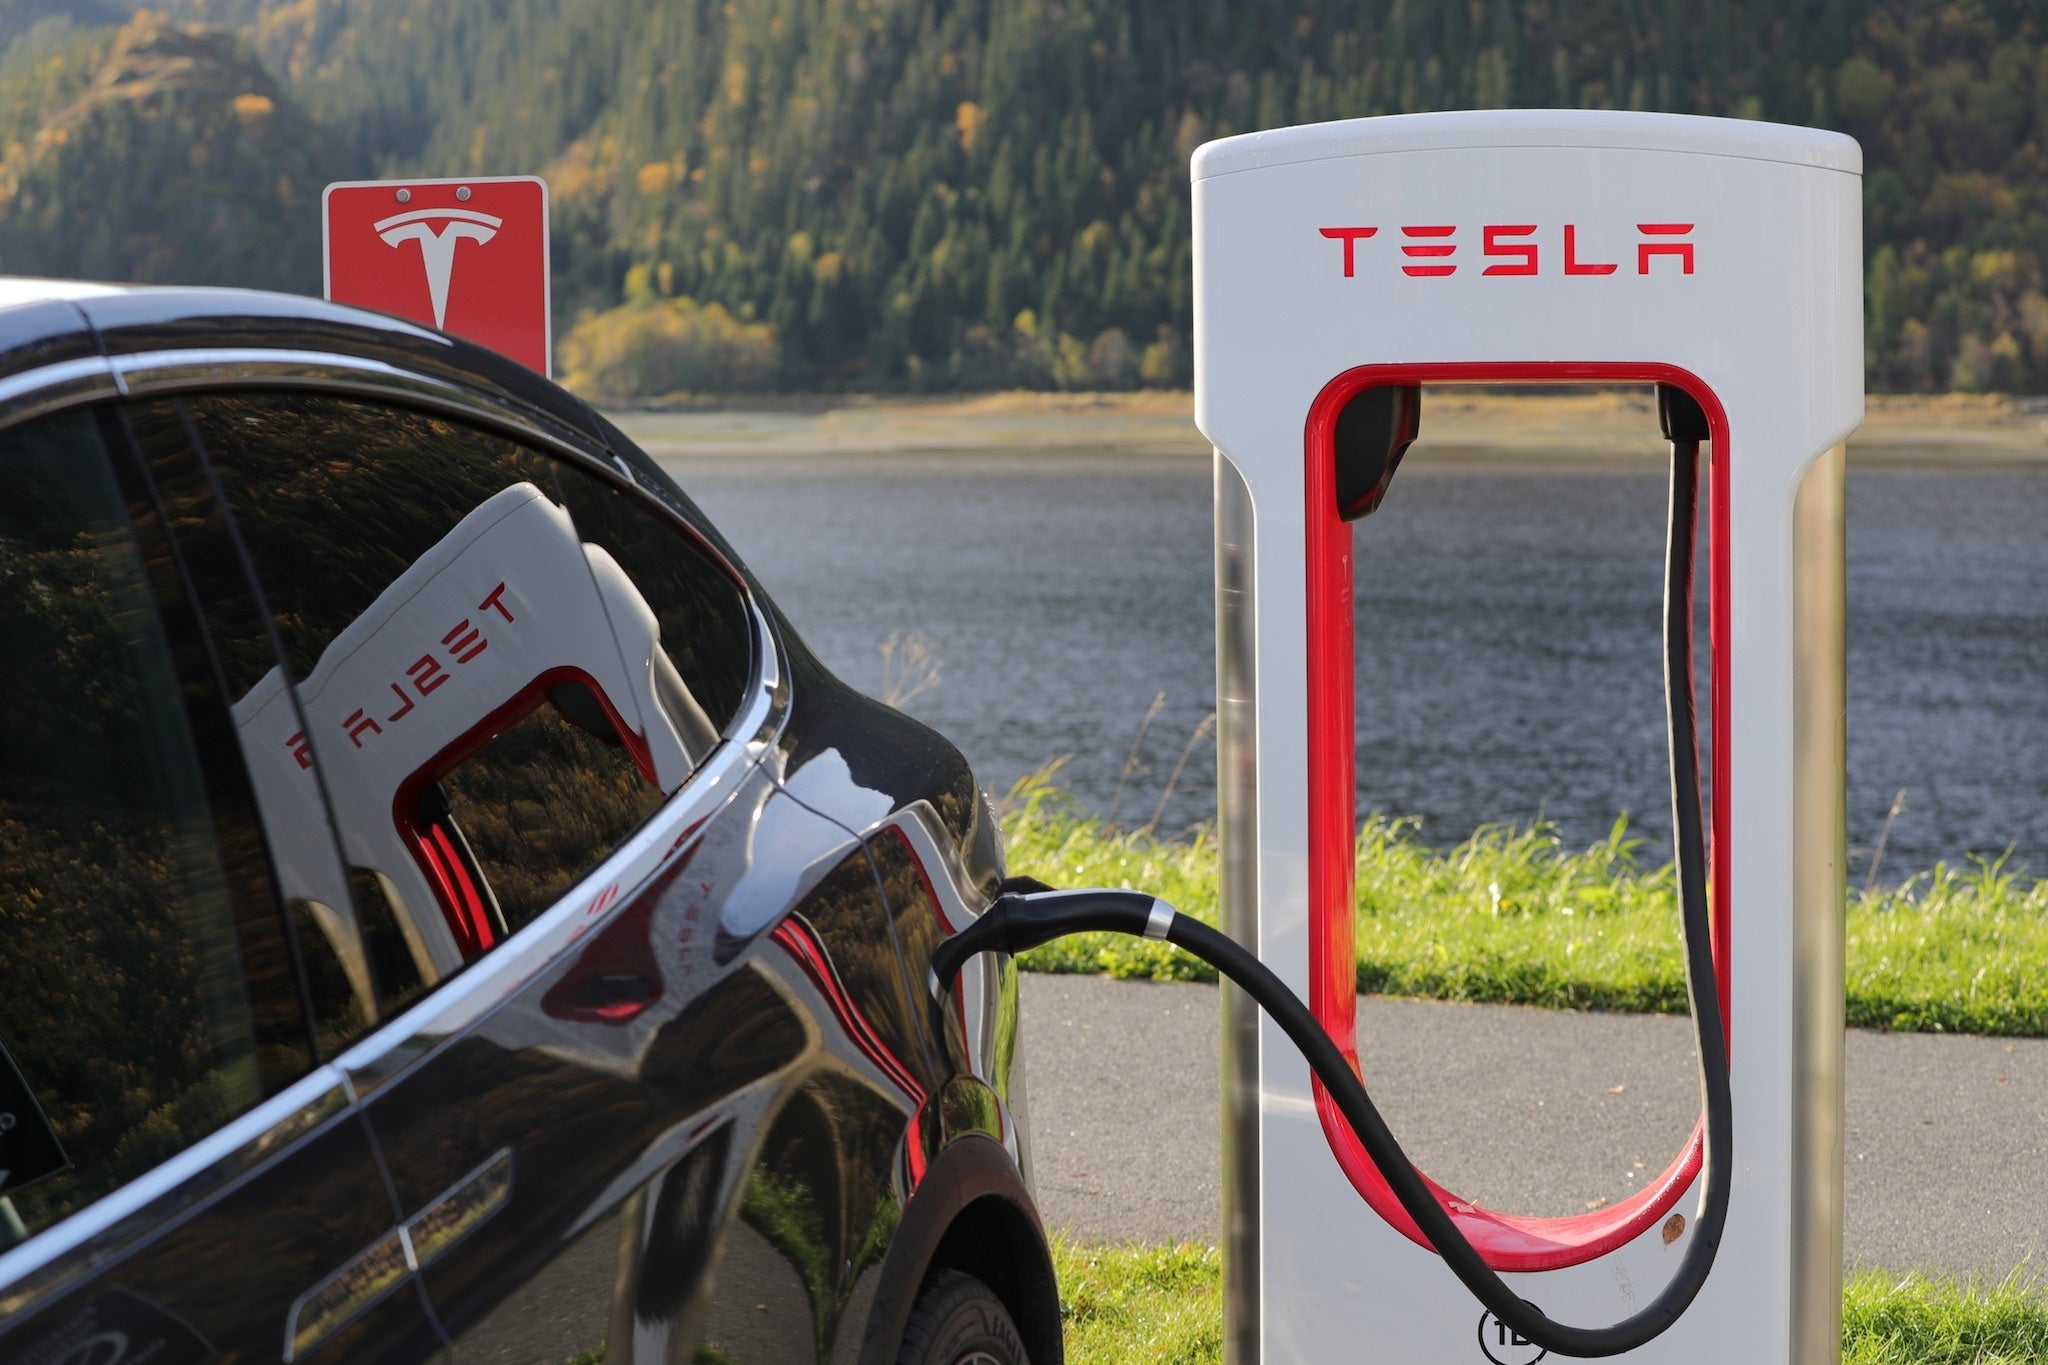 The worst thing about electric cars might not be an issue for much longer